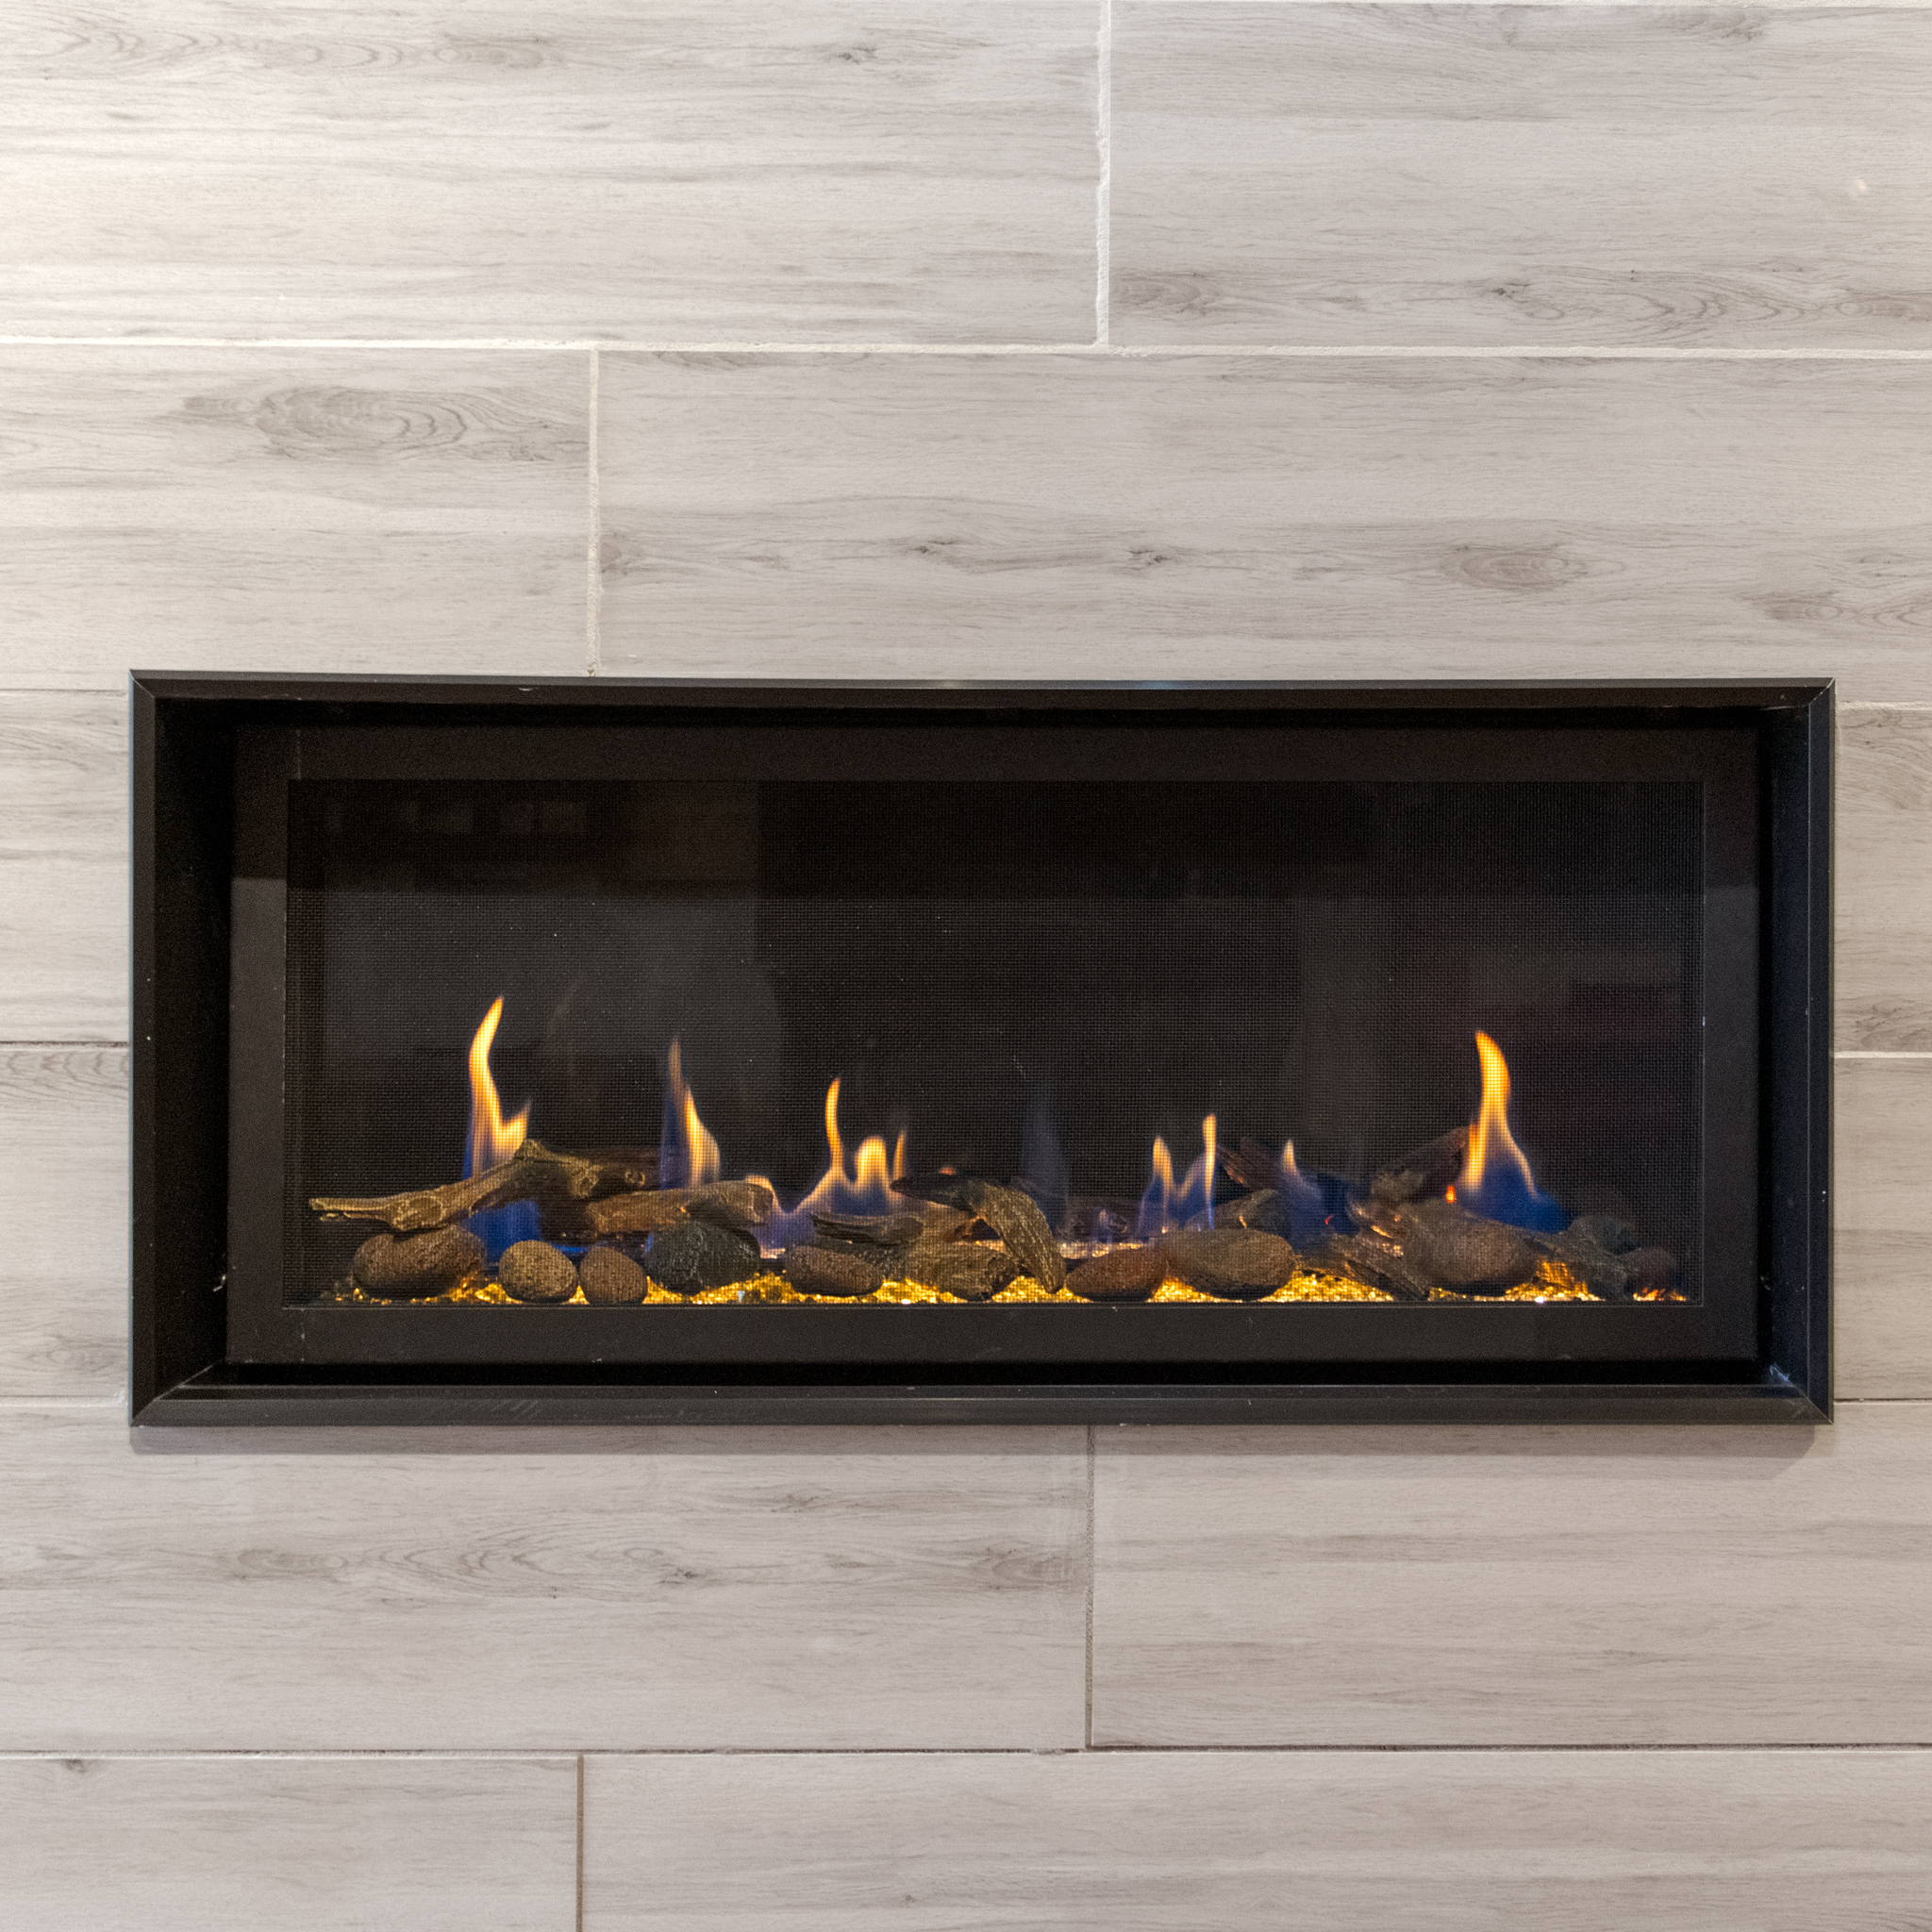 FireplaceX 3615 - ‧ Direct Vent Gas Fireplace - 33,000 BTU‧ Black Porcelain Enamel Fireback‧ Tile Trim Kit‧ Driftwood Twigs and Stones Fyre-Art‧ Black Glass Burner Media‧ Proflame2 Full Function Remote Control‧ Fan‧ Choice of glass – driftwood – logs‧ Perfect for large bedrooms – family rooms – office‧ Most Popular Linear Fireplace